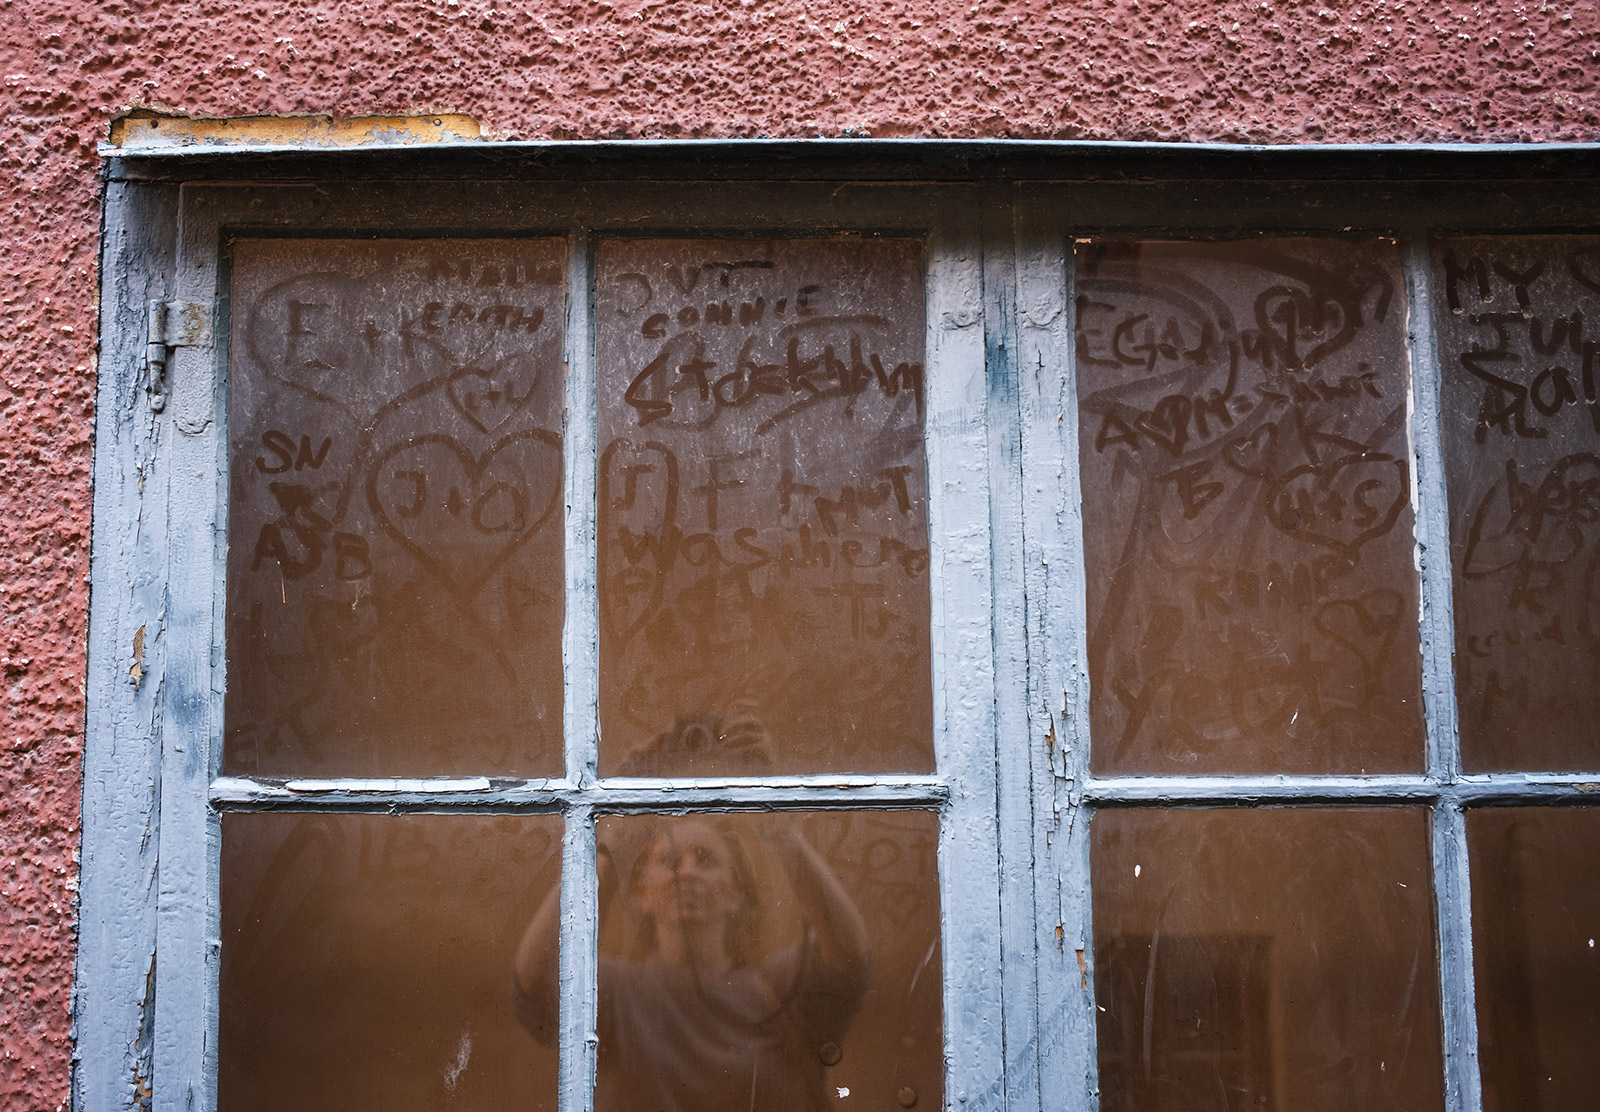 Writing on dirty window